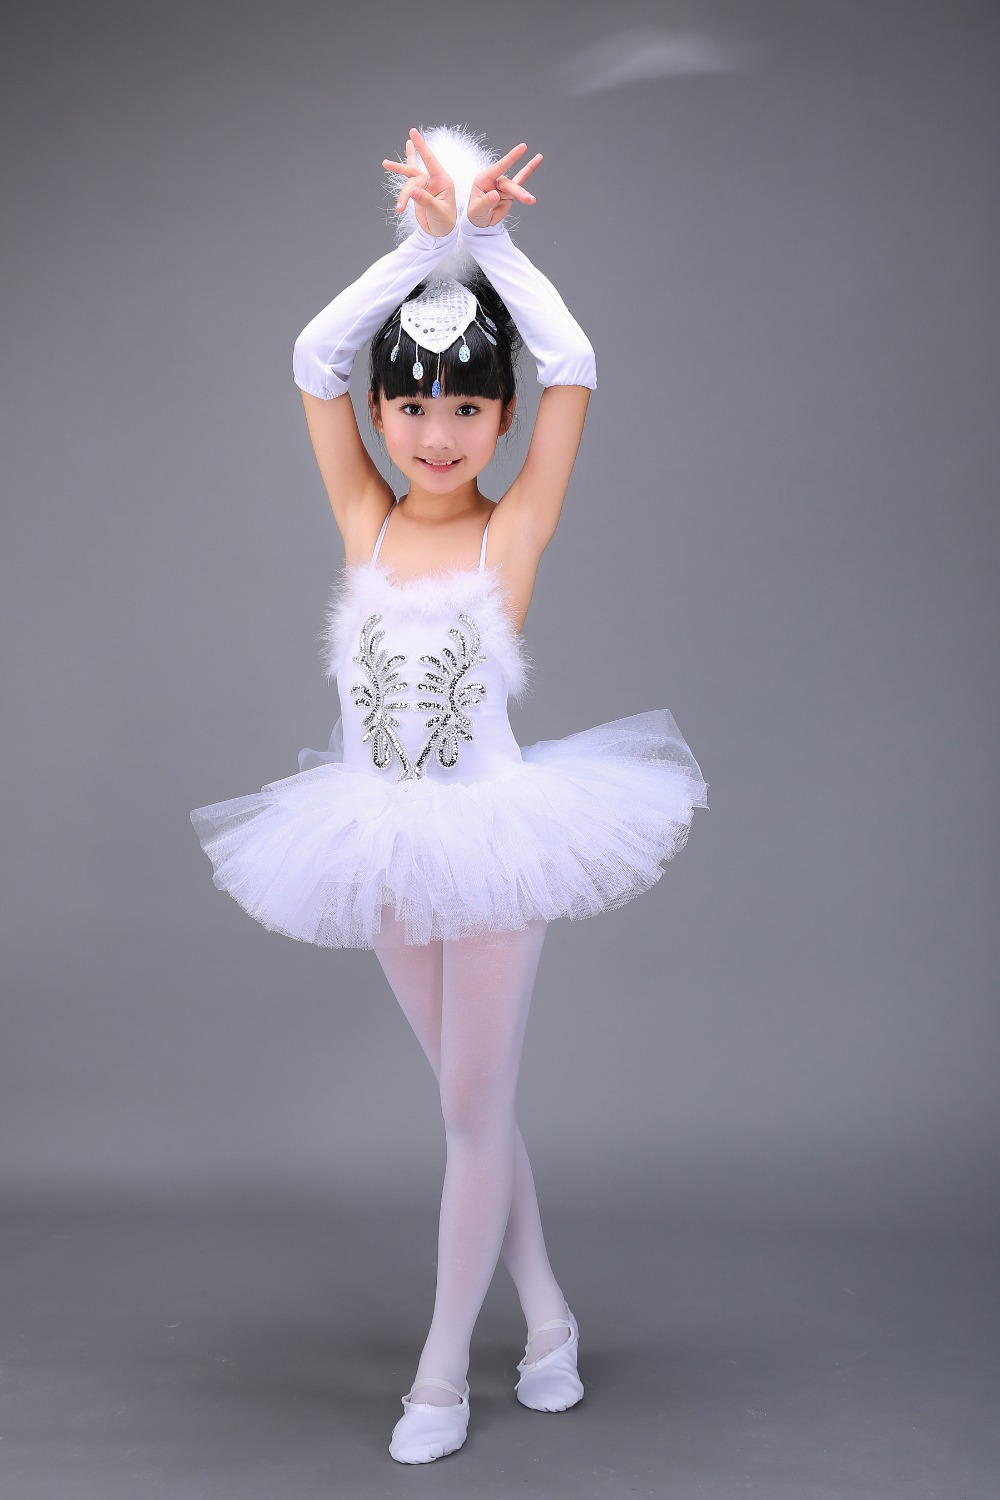 2-16Y-Child-White-Swan-Lake-Ballet-Costume-Girl-Dance-Dresses-Ballerina-Dress-Kids-Ballet-Dress (3)